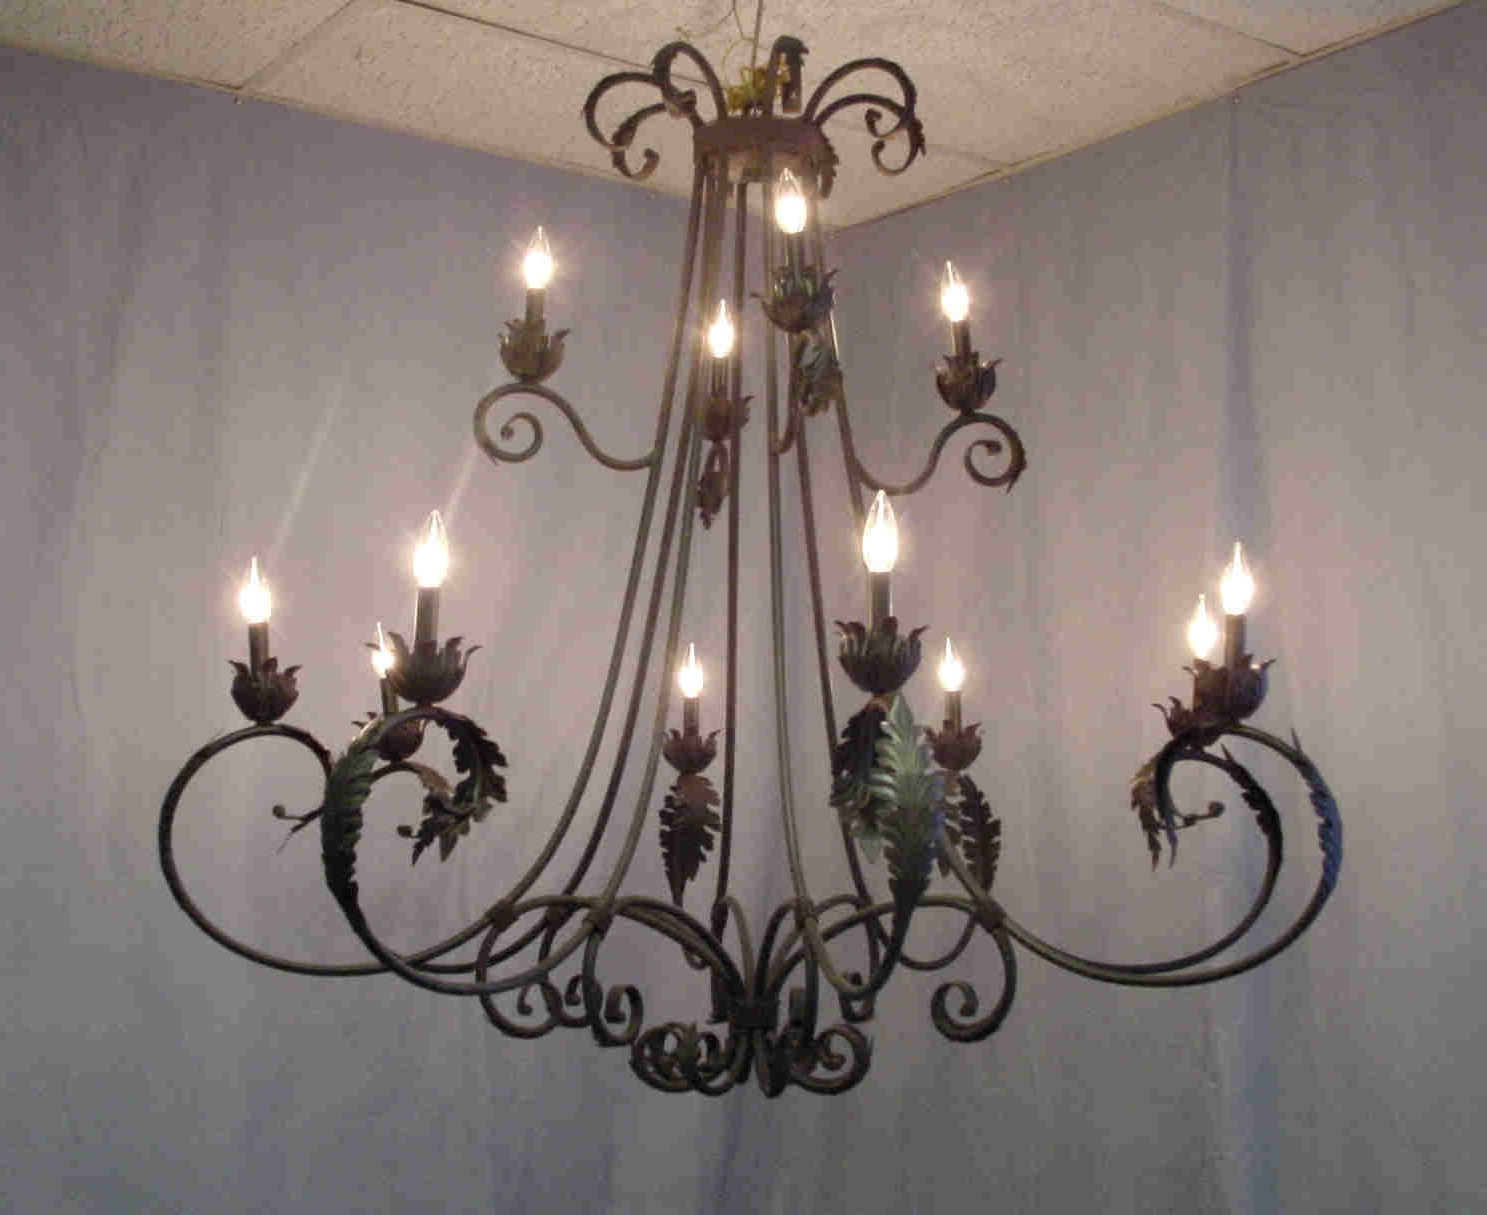 Current Outdoor Iron Hanging Lights Intended For Wrought Iron & Antler Chandeliers & Lighting Rustic, Tuscan, Antique (Gallery 20 of 20)